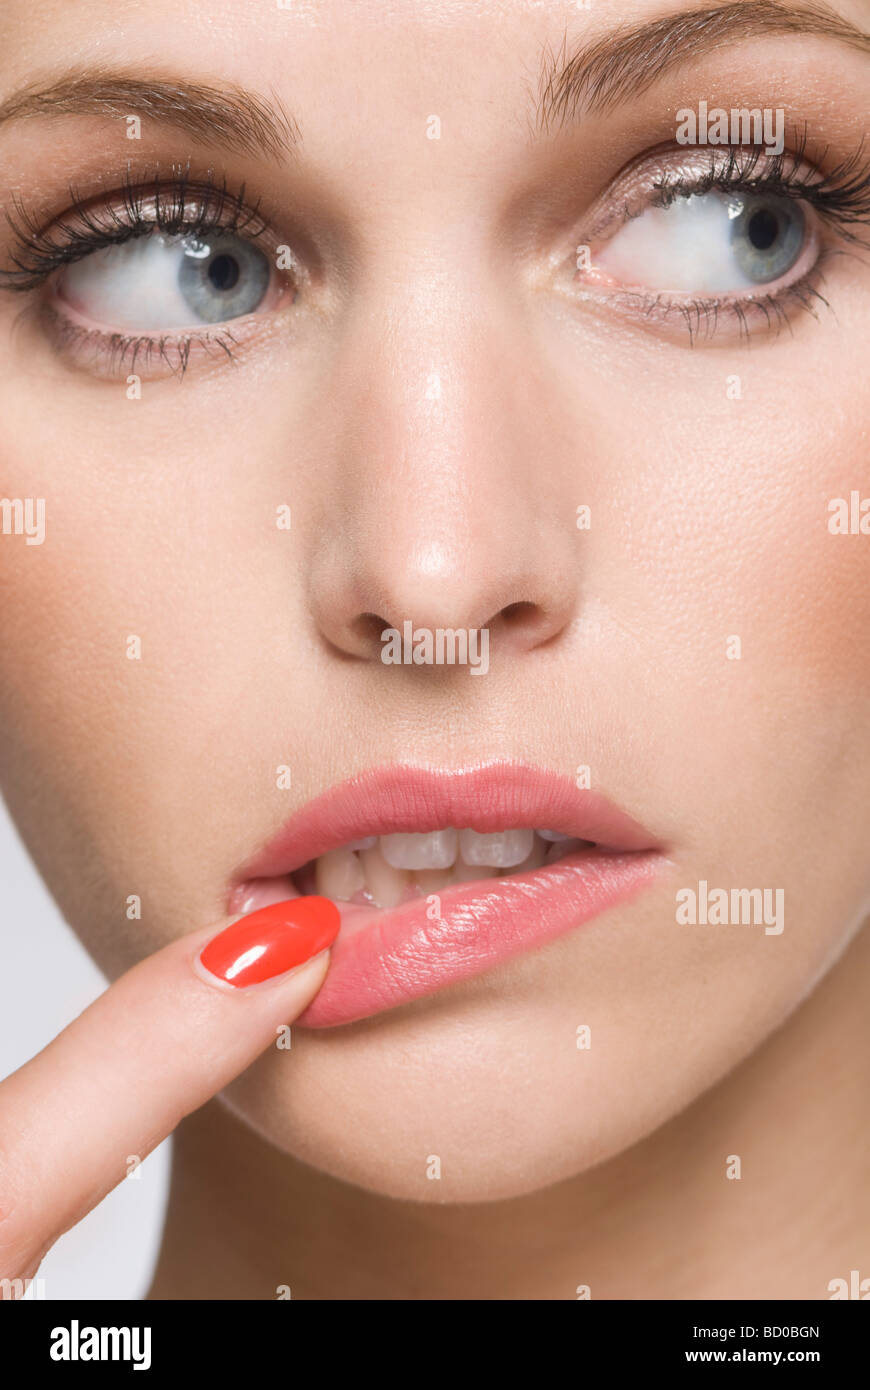 female beauty with finger in mouth - Stock Image